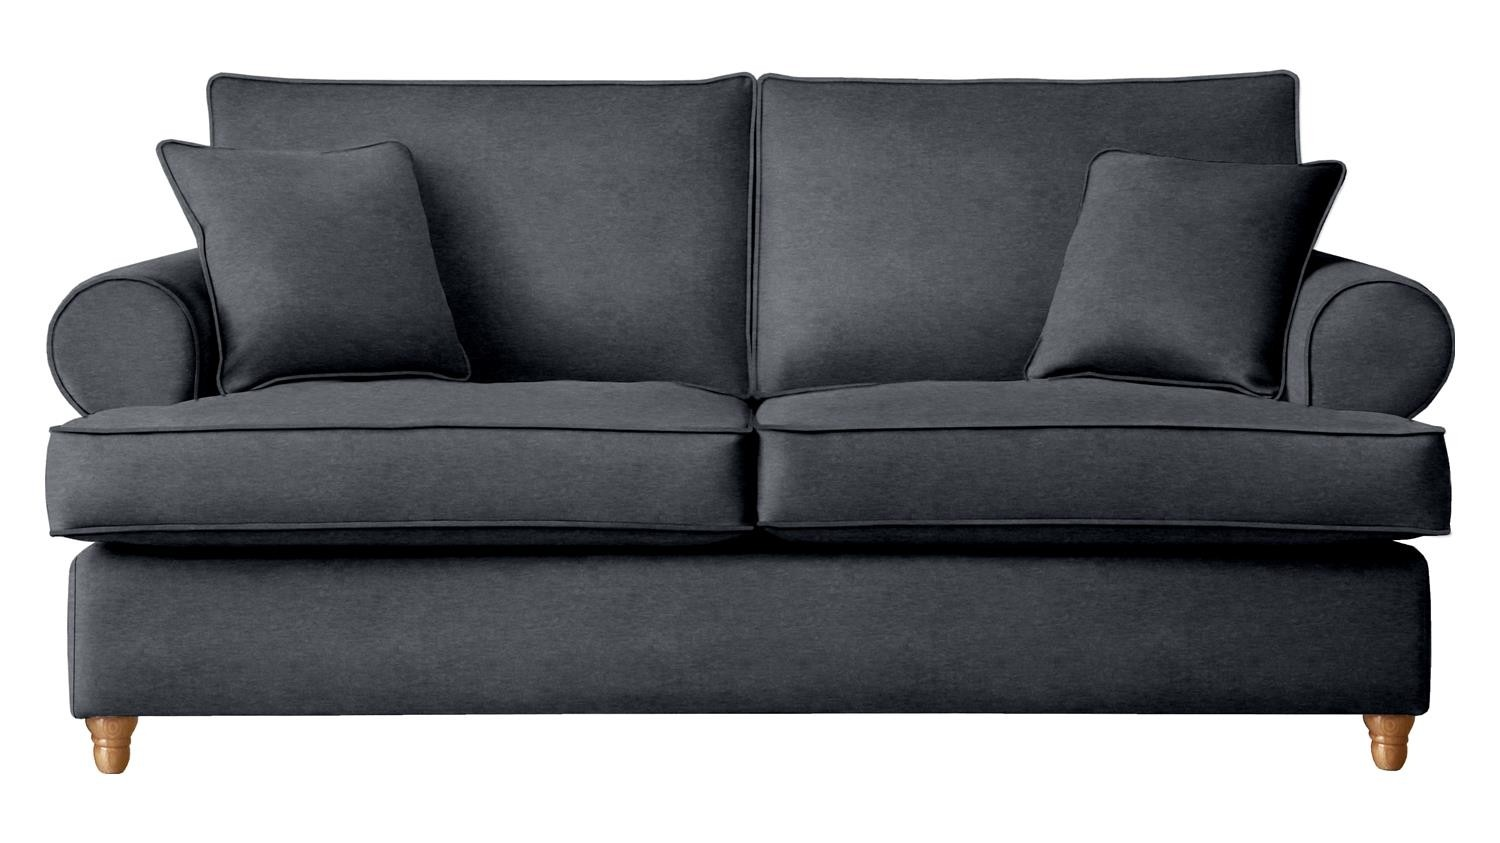 The Buttermere 2 Seater Sofa Bed